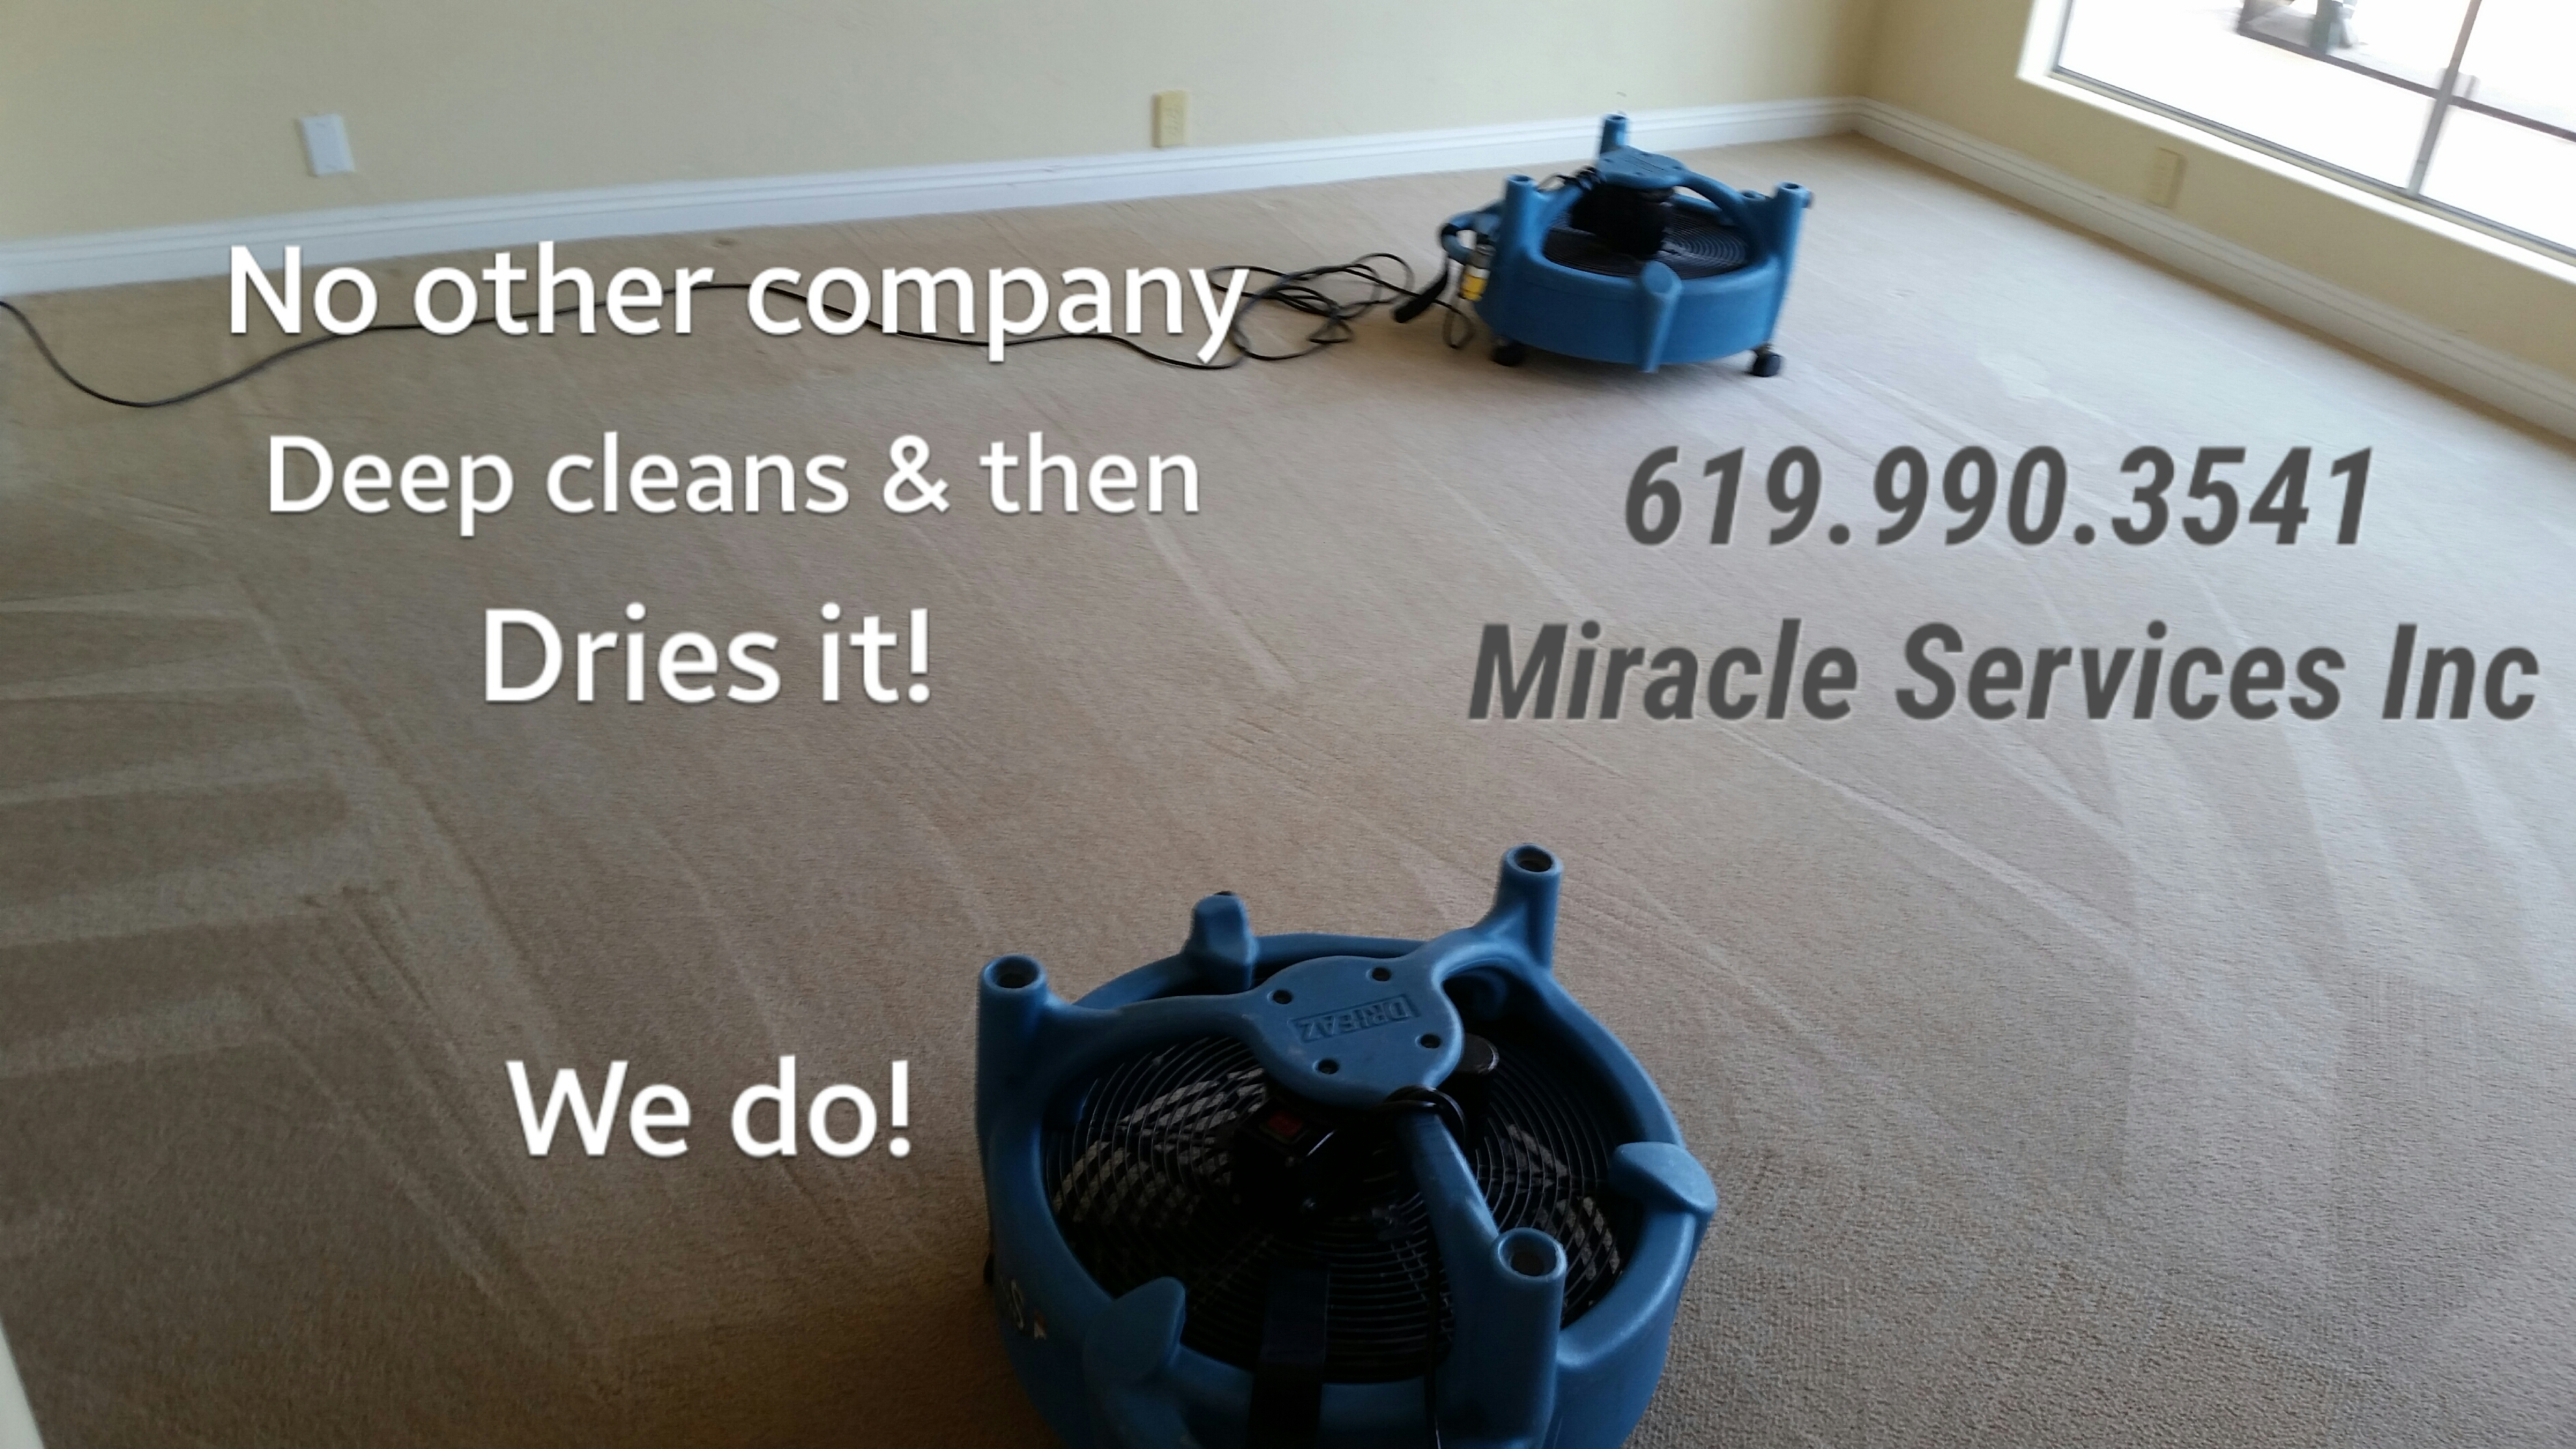 Fast Dry Carpet Cleaner Carpet Vidalondon